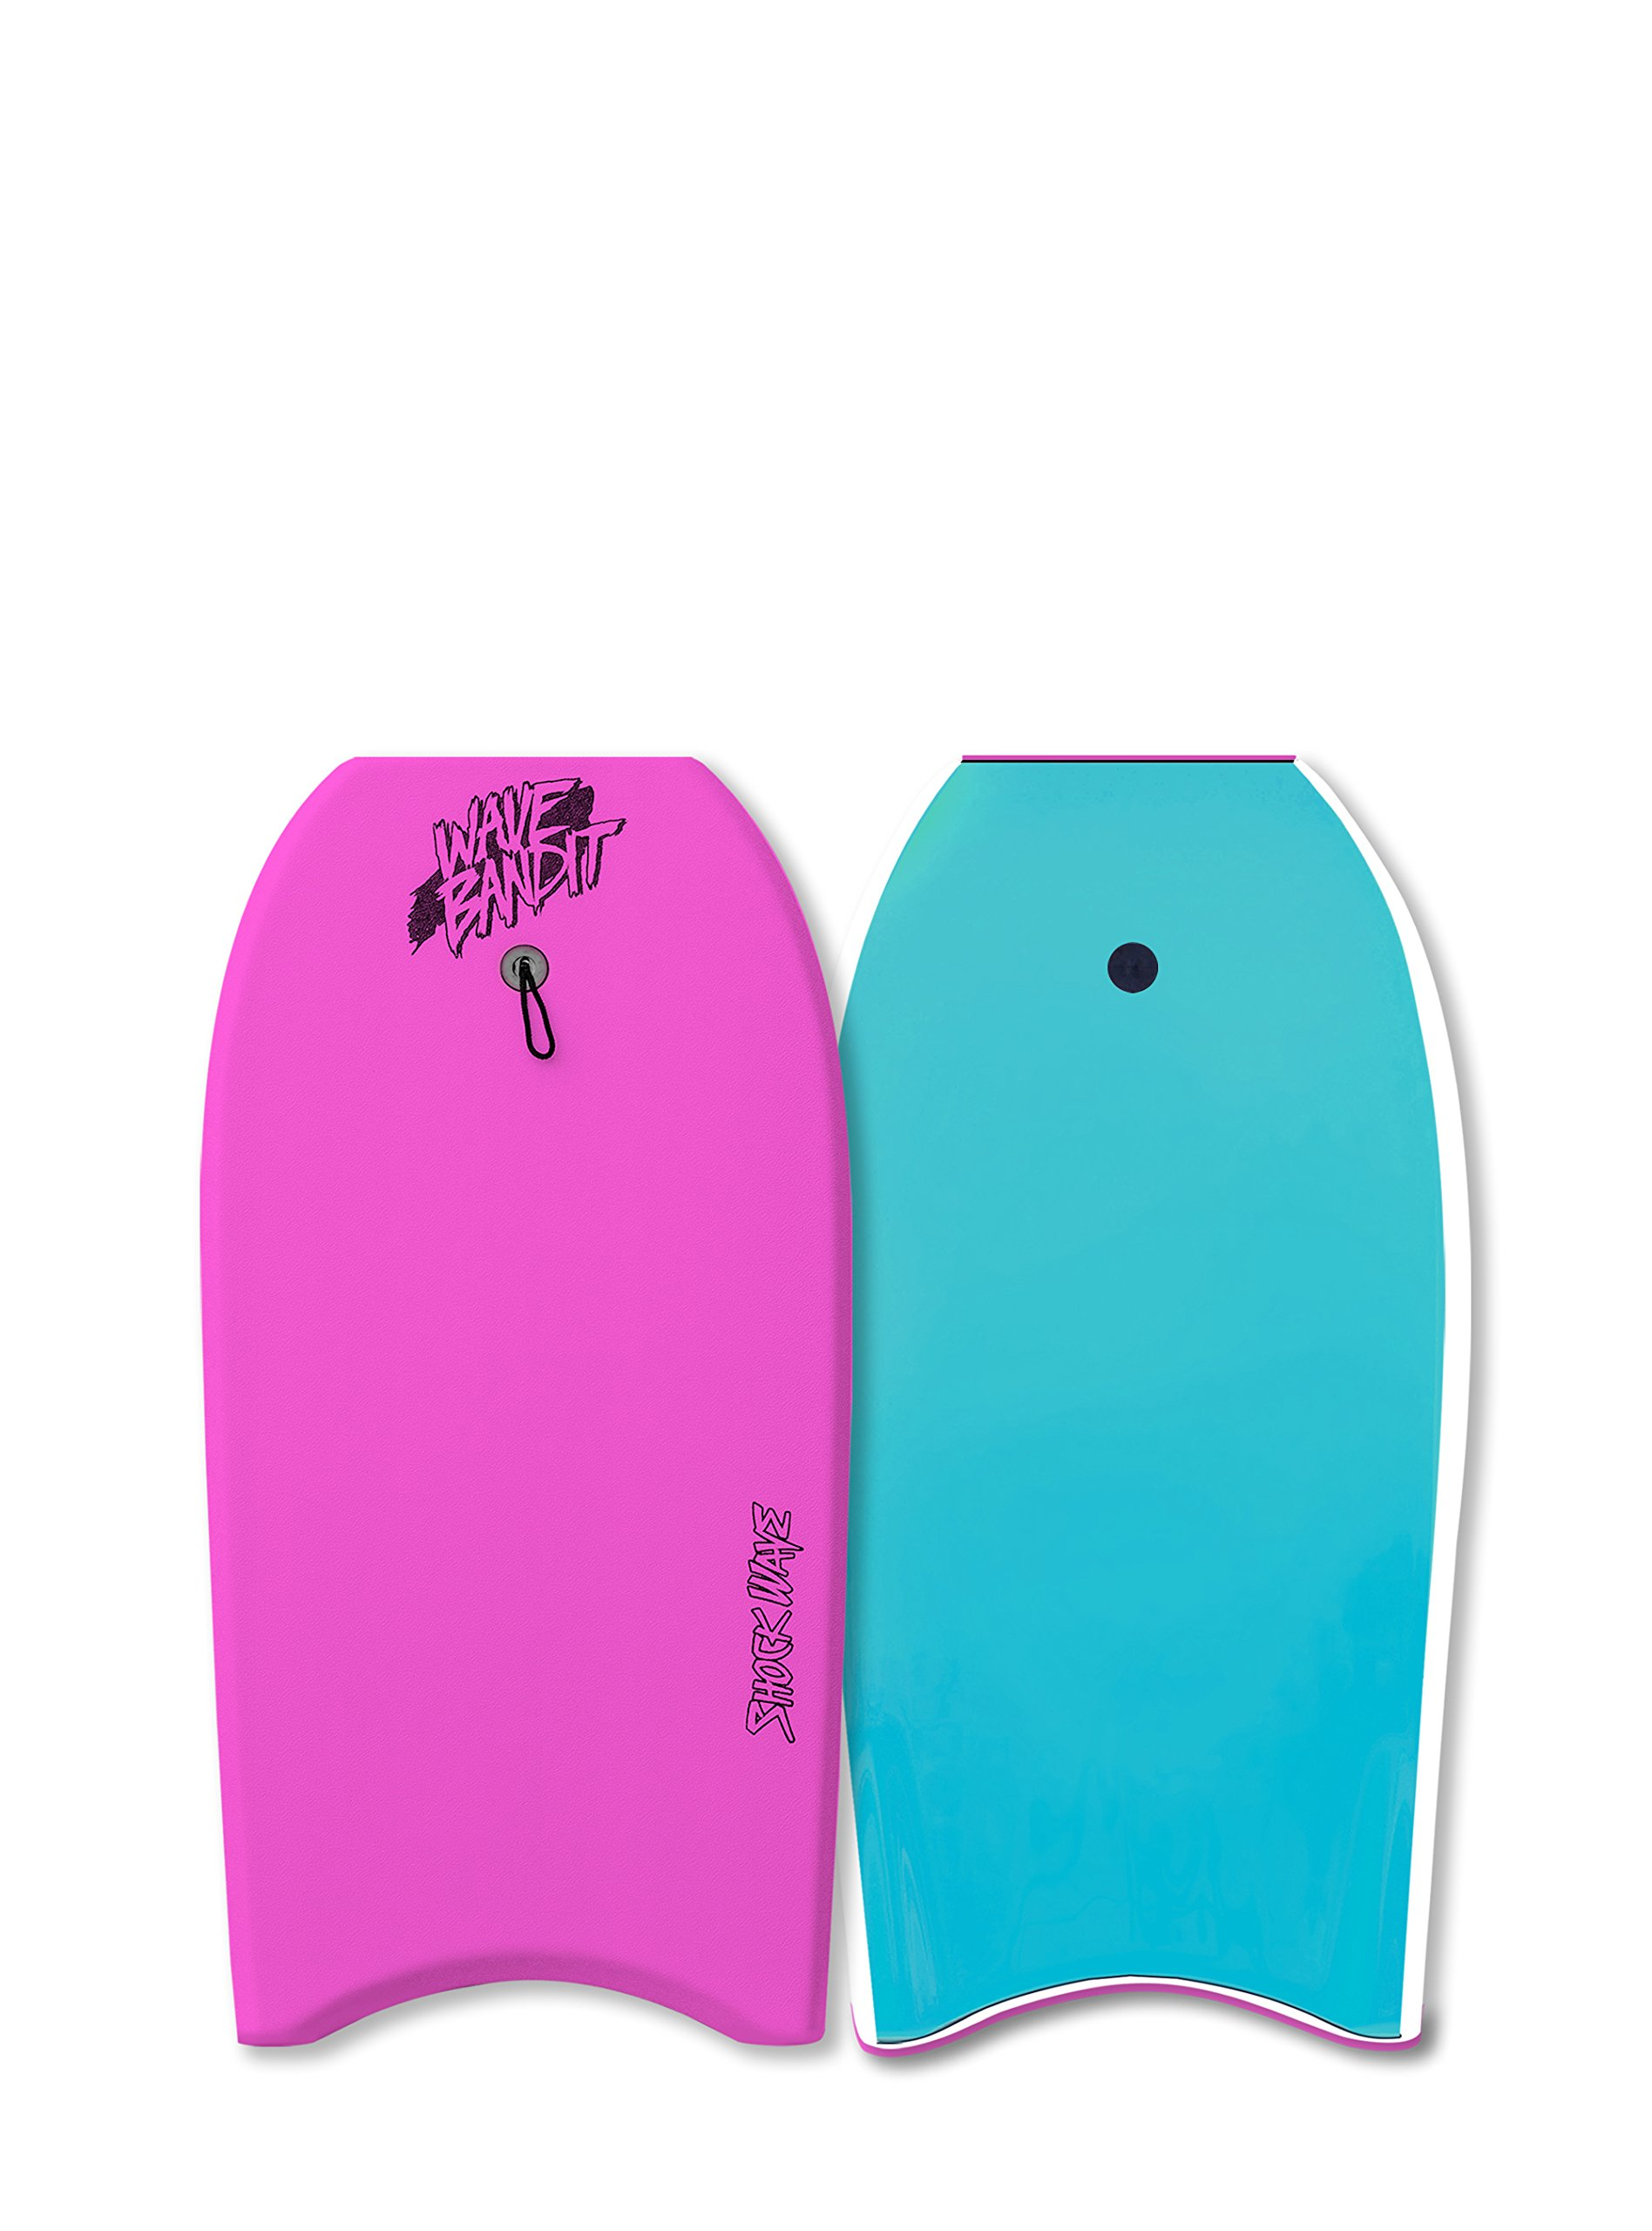 Catch Surf Wave Bandit Shockwave 36'' Body Board, Neon Pink